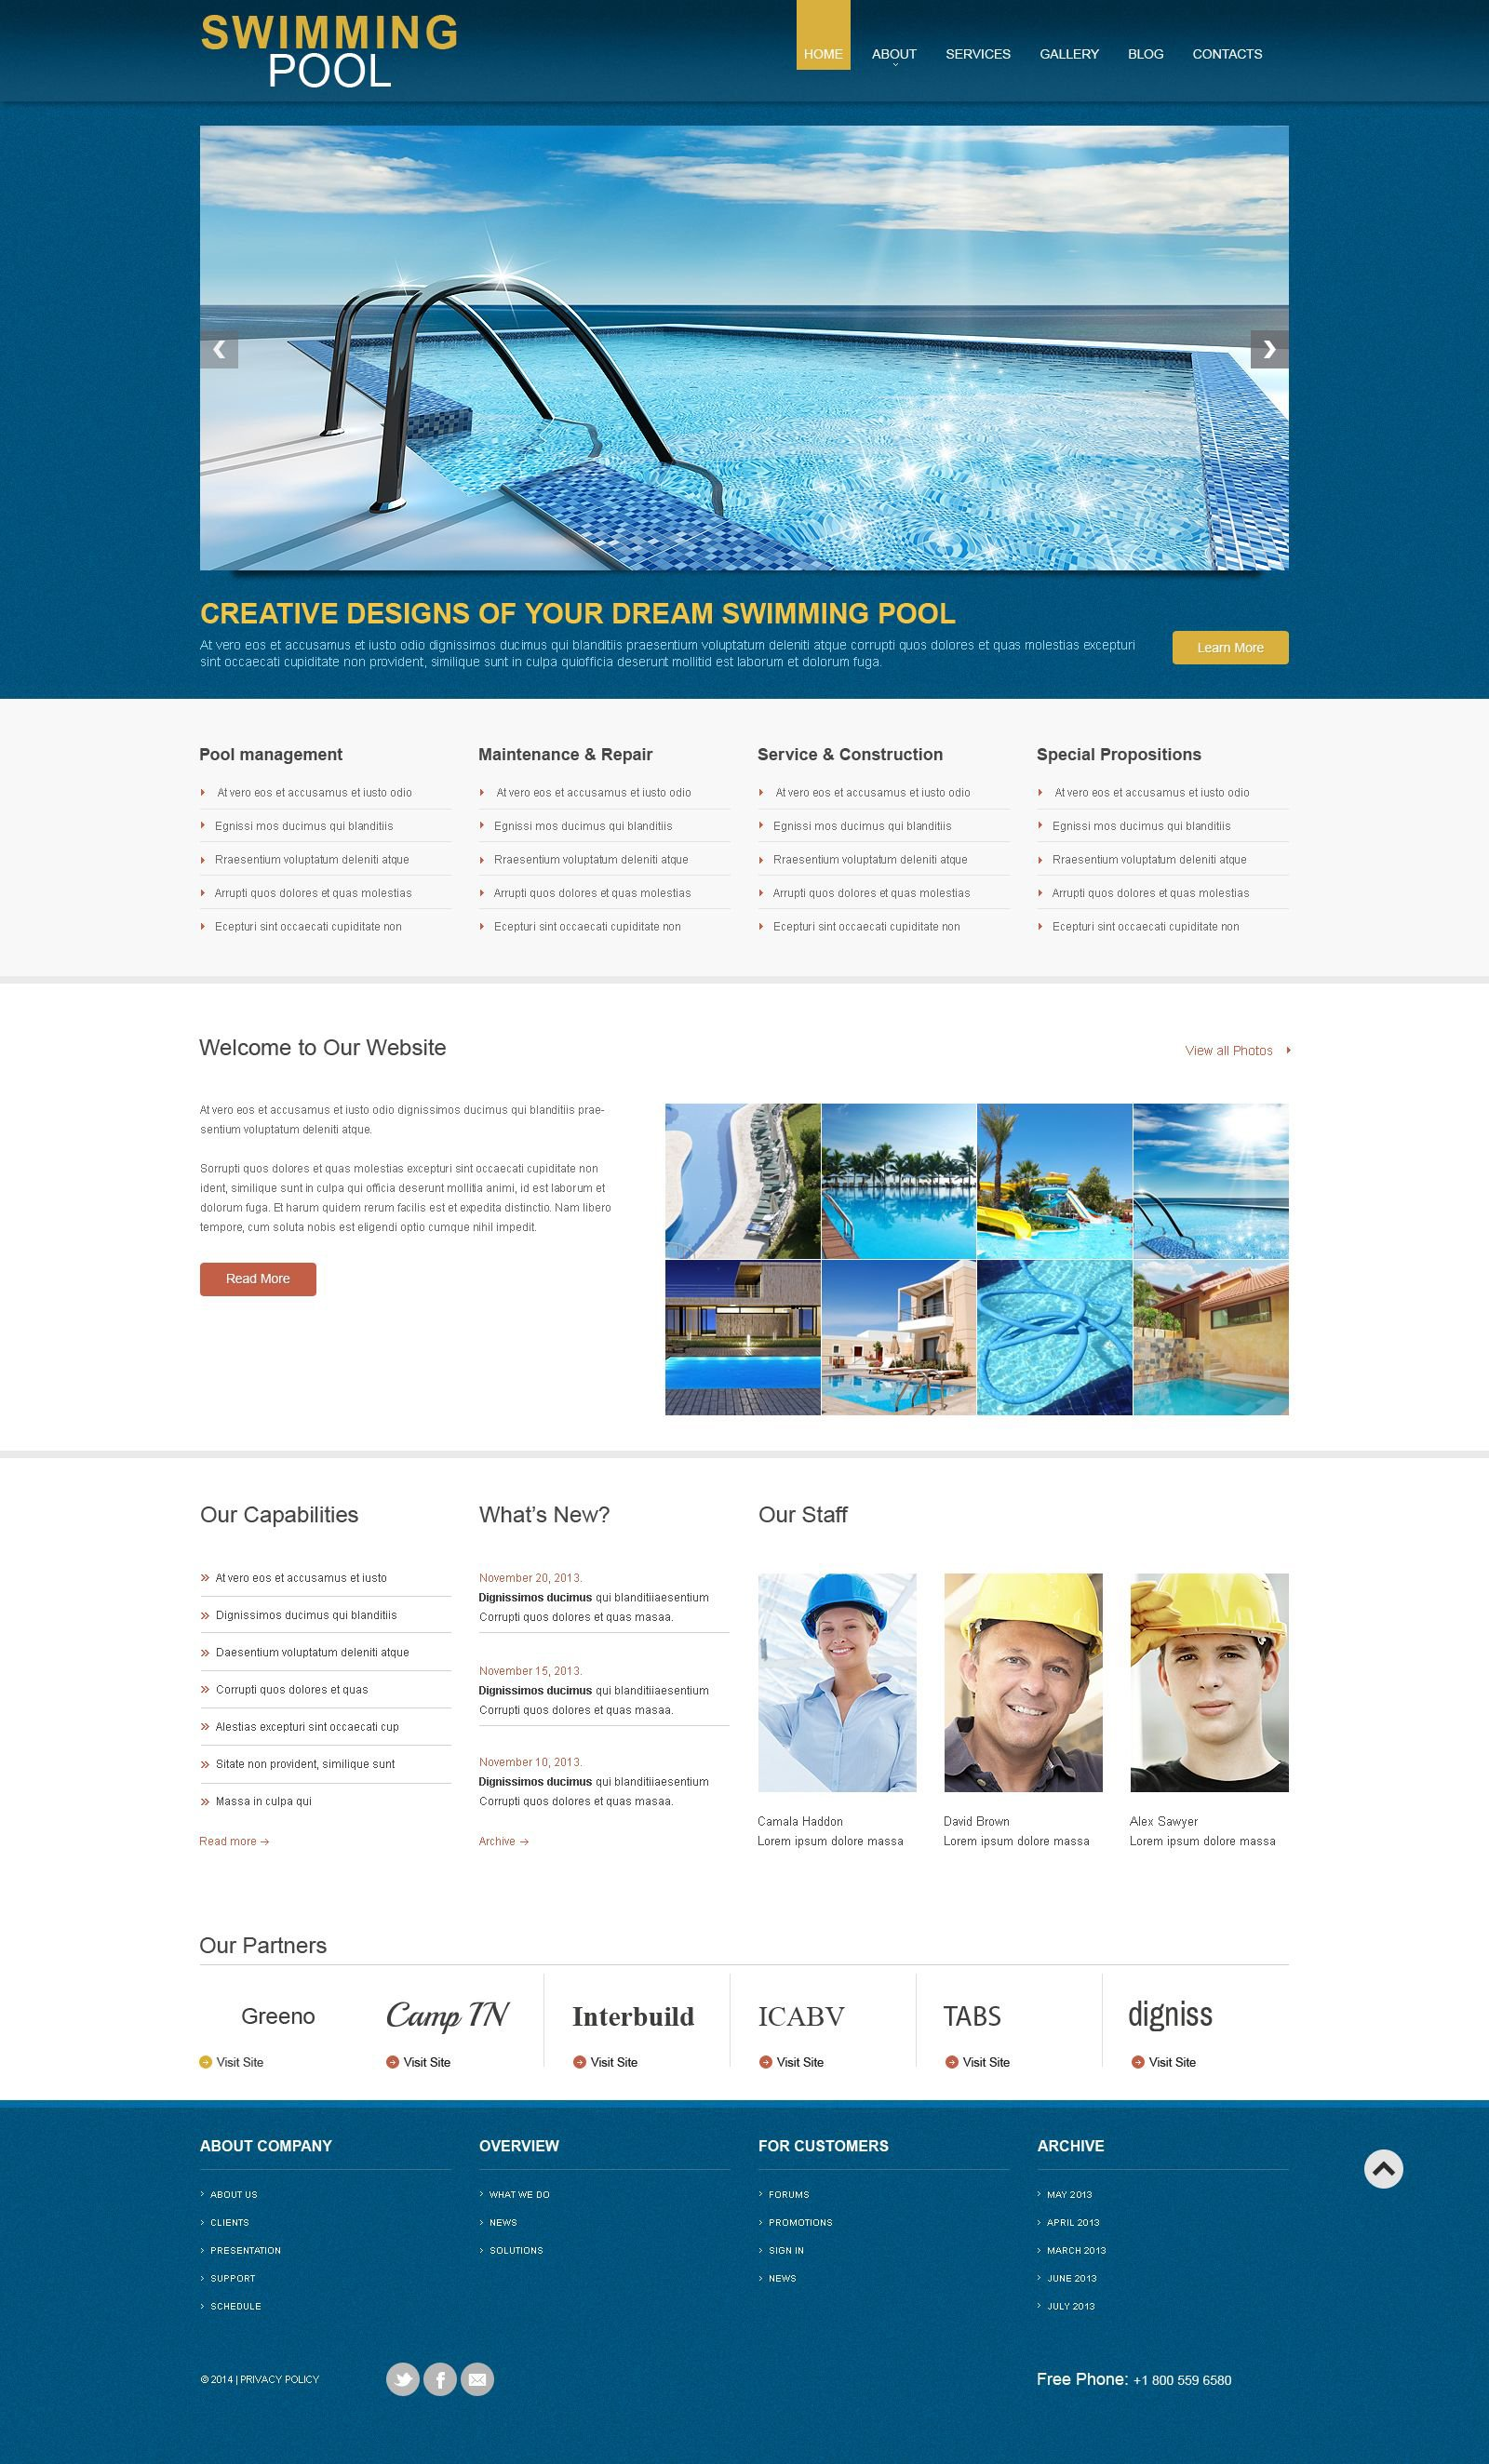 The Swimming Pool WordPress Design 53597, one of the best WordPress themes of its kind (architecture, most popular), also known as swimming pool WordPress template, builder WordPress template, pool WordPress template, construction WordPress template, maintenance company WordPress template, services WordPress template, estimate WordPress template, cleaner WordPress template, dirty WordPress template, testimonials WordPress template, professional WordPress template, workteam WordPress template, tips WordPress template, client WordPress template, price WordPress template, tidying up WordPress template, sponge WordPress template, decoration WordPress template, preventative WordPress template, plumbing WordPress template, repair WordPress template, resurfacing WordPress template, painting WordPress template, fiberglass WordPress template, plaster WordPress template, deck WordPress template, drainage WordPress template, renovation and related with swimming pool, builder, pool, construction, maintenance company, services, estimate, cleaner, dirty, testimonials, professional, workteam, tips, client, price, tidying up, sponge, decoration, preventative, plumbing, repair, resurfacing, painting, fiberglass, plaster, deck, drainage, renovation, etc.